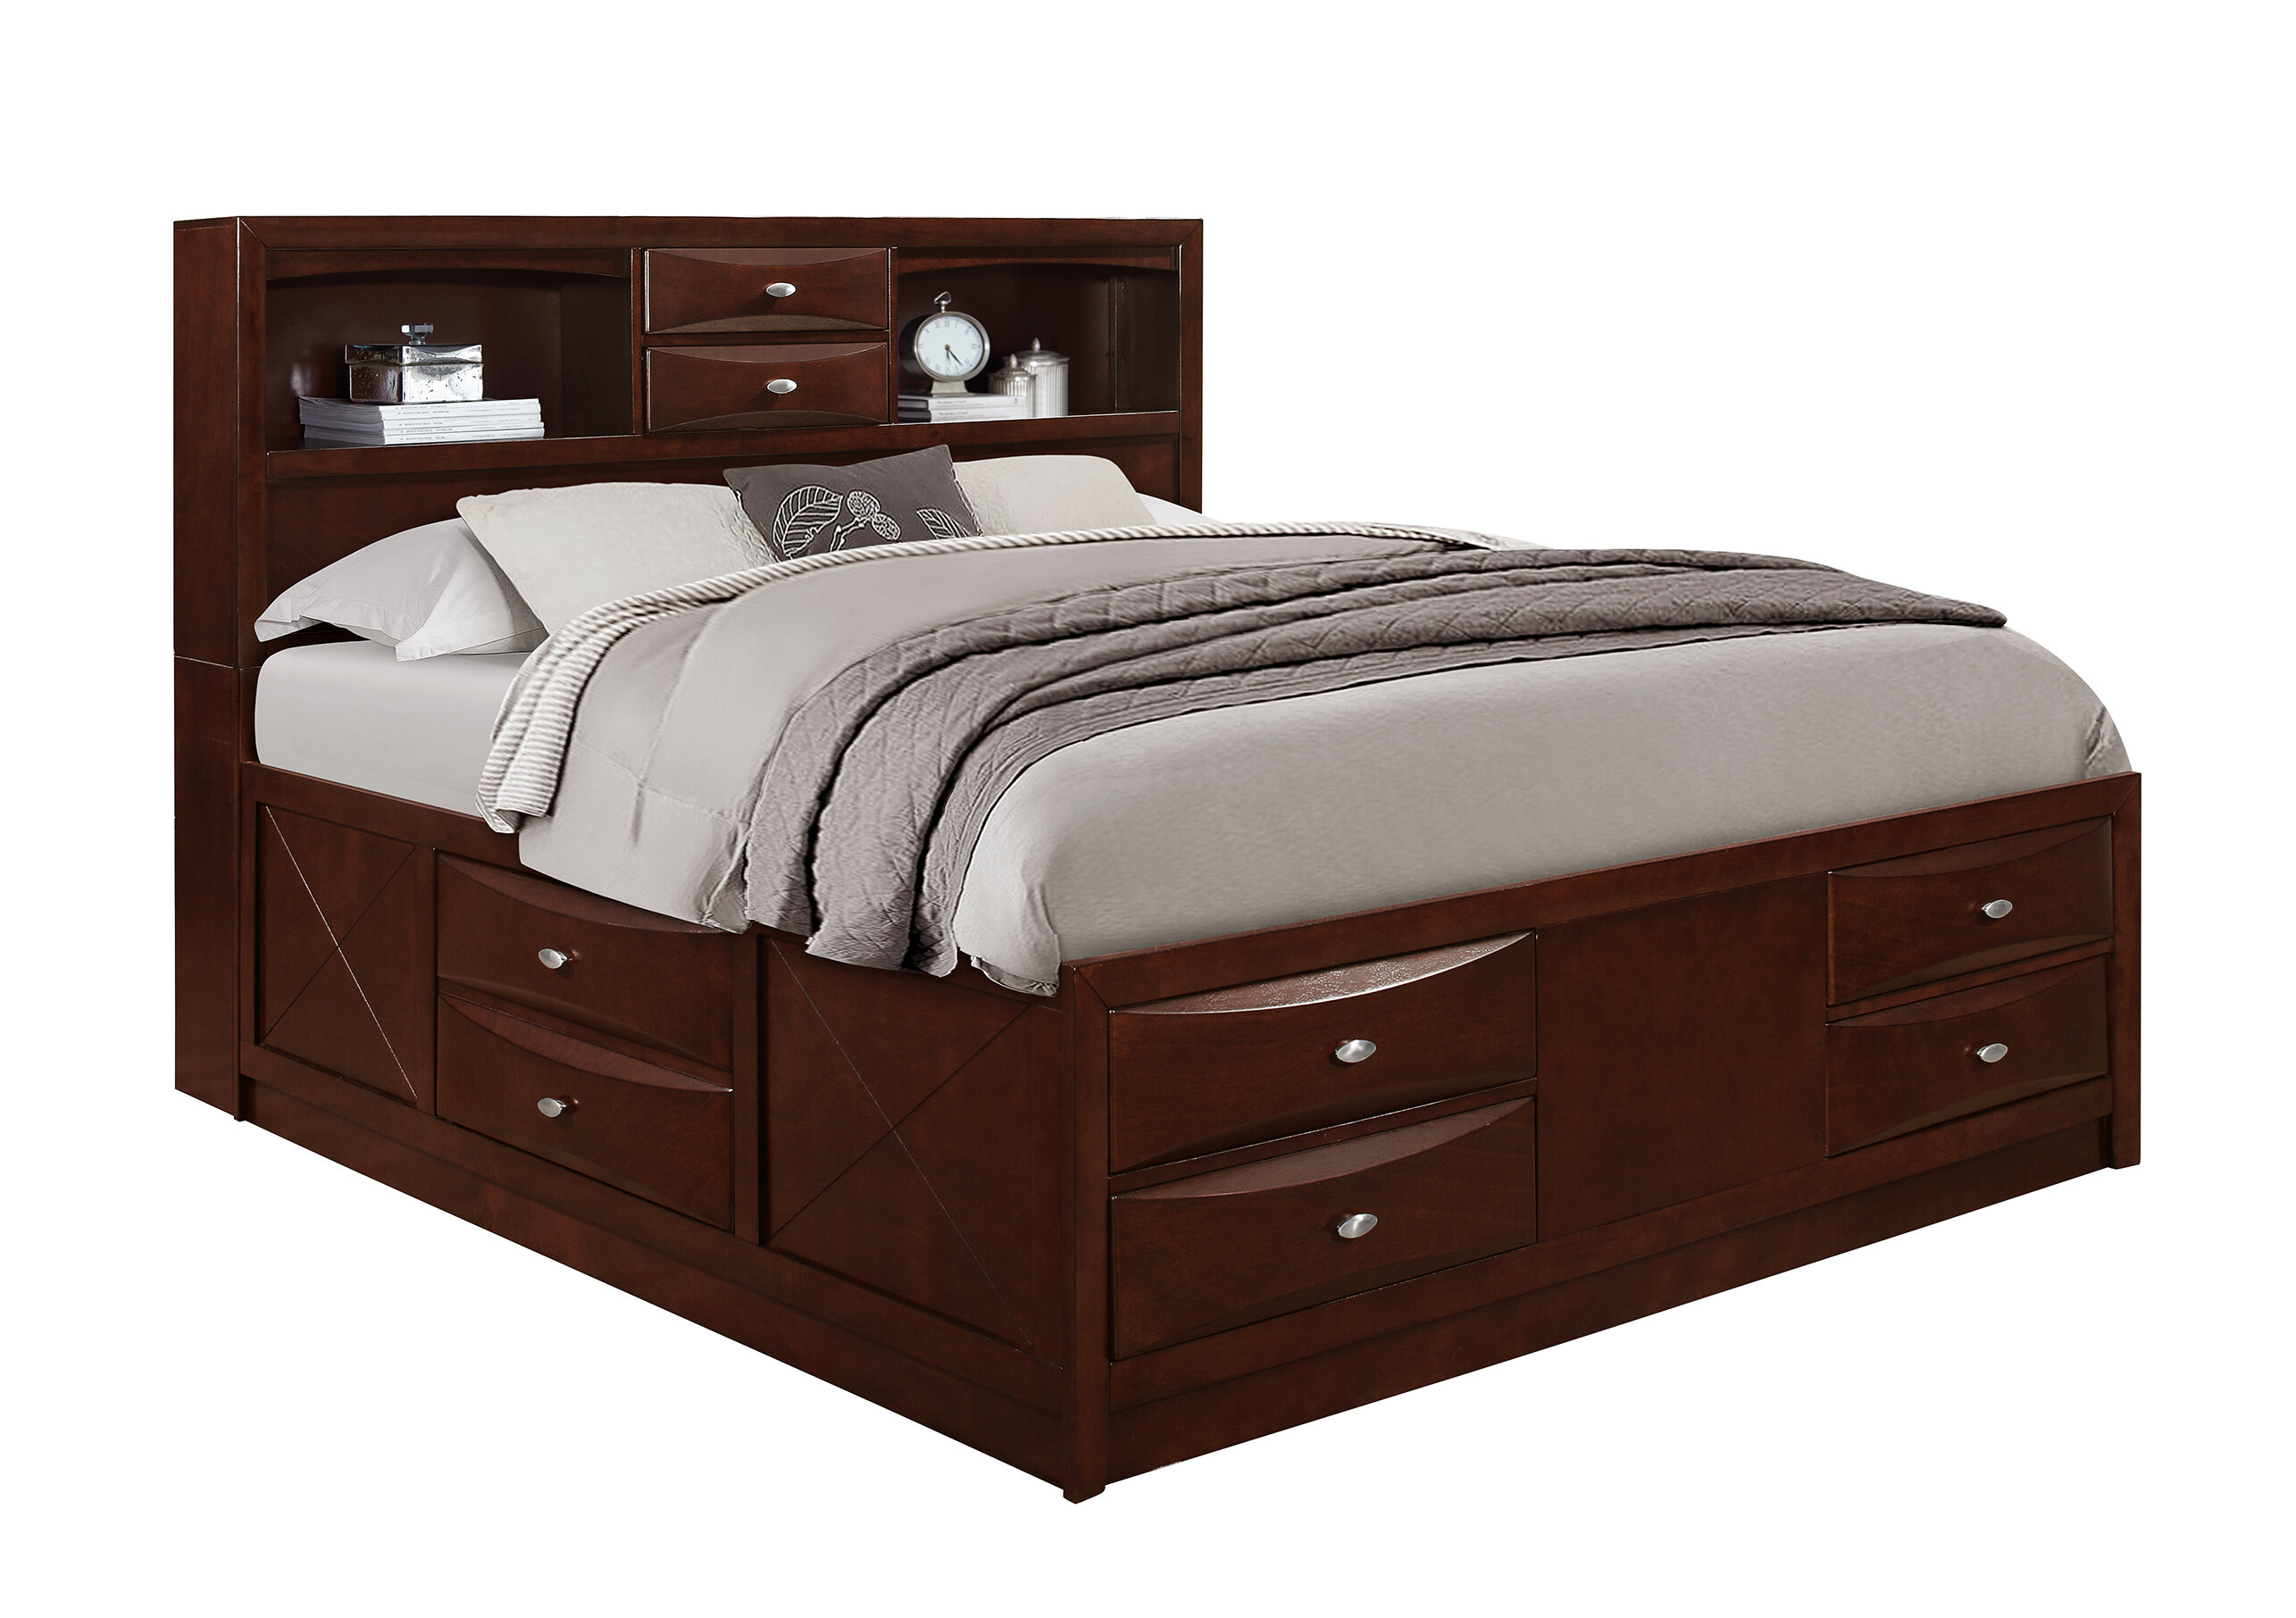 products standard beds bed ikea king double storage w lur spr and white gb headboard size brimnes en frame with y